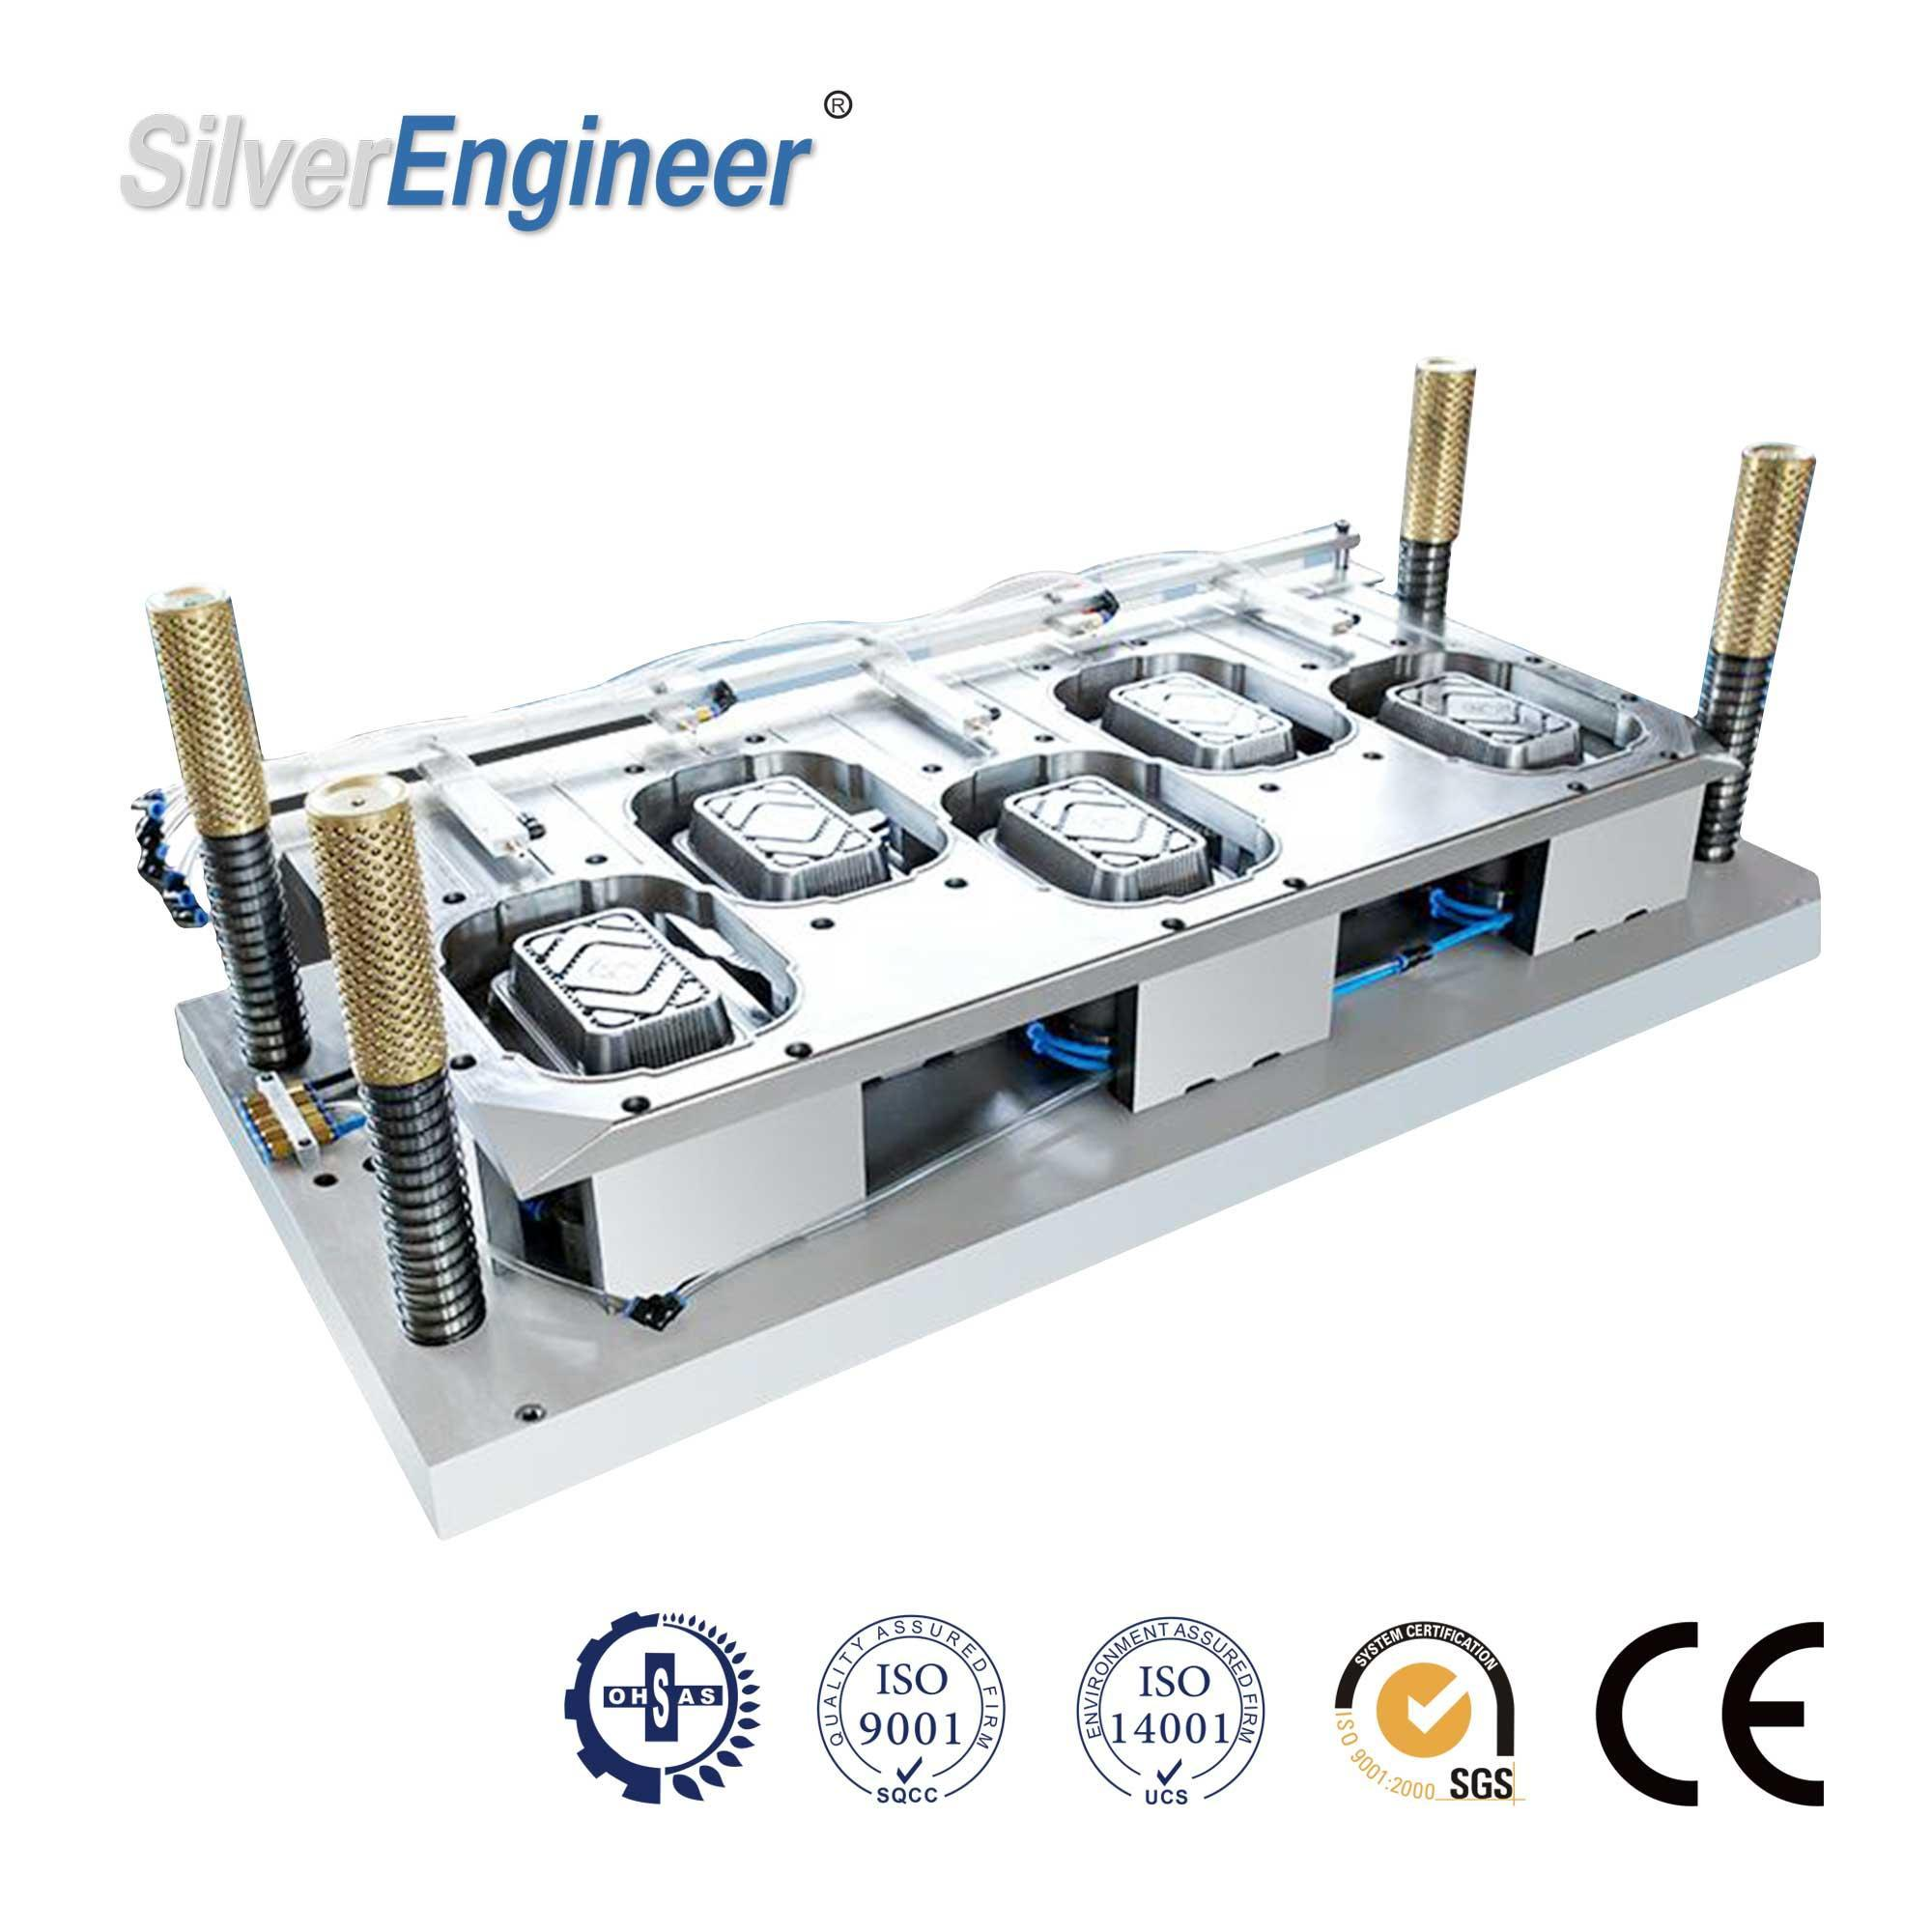 Aluminum Foil Container Mould for Disposable Food Container From Silverengineer 1